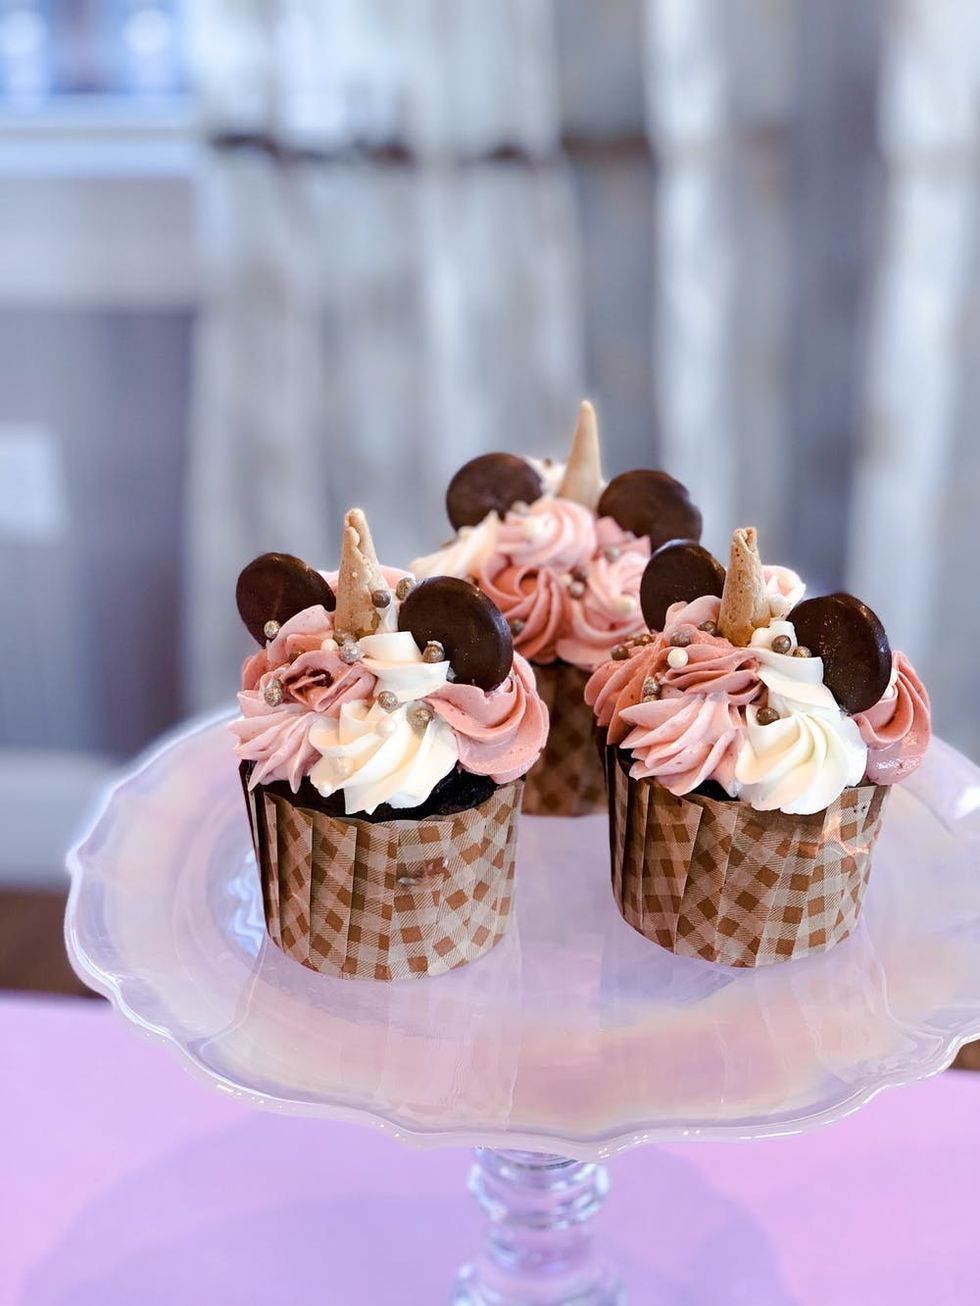 How to Make Disney Cupcakes Like a Pastry Chef - Brit + Co